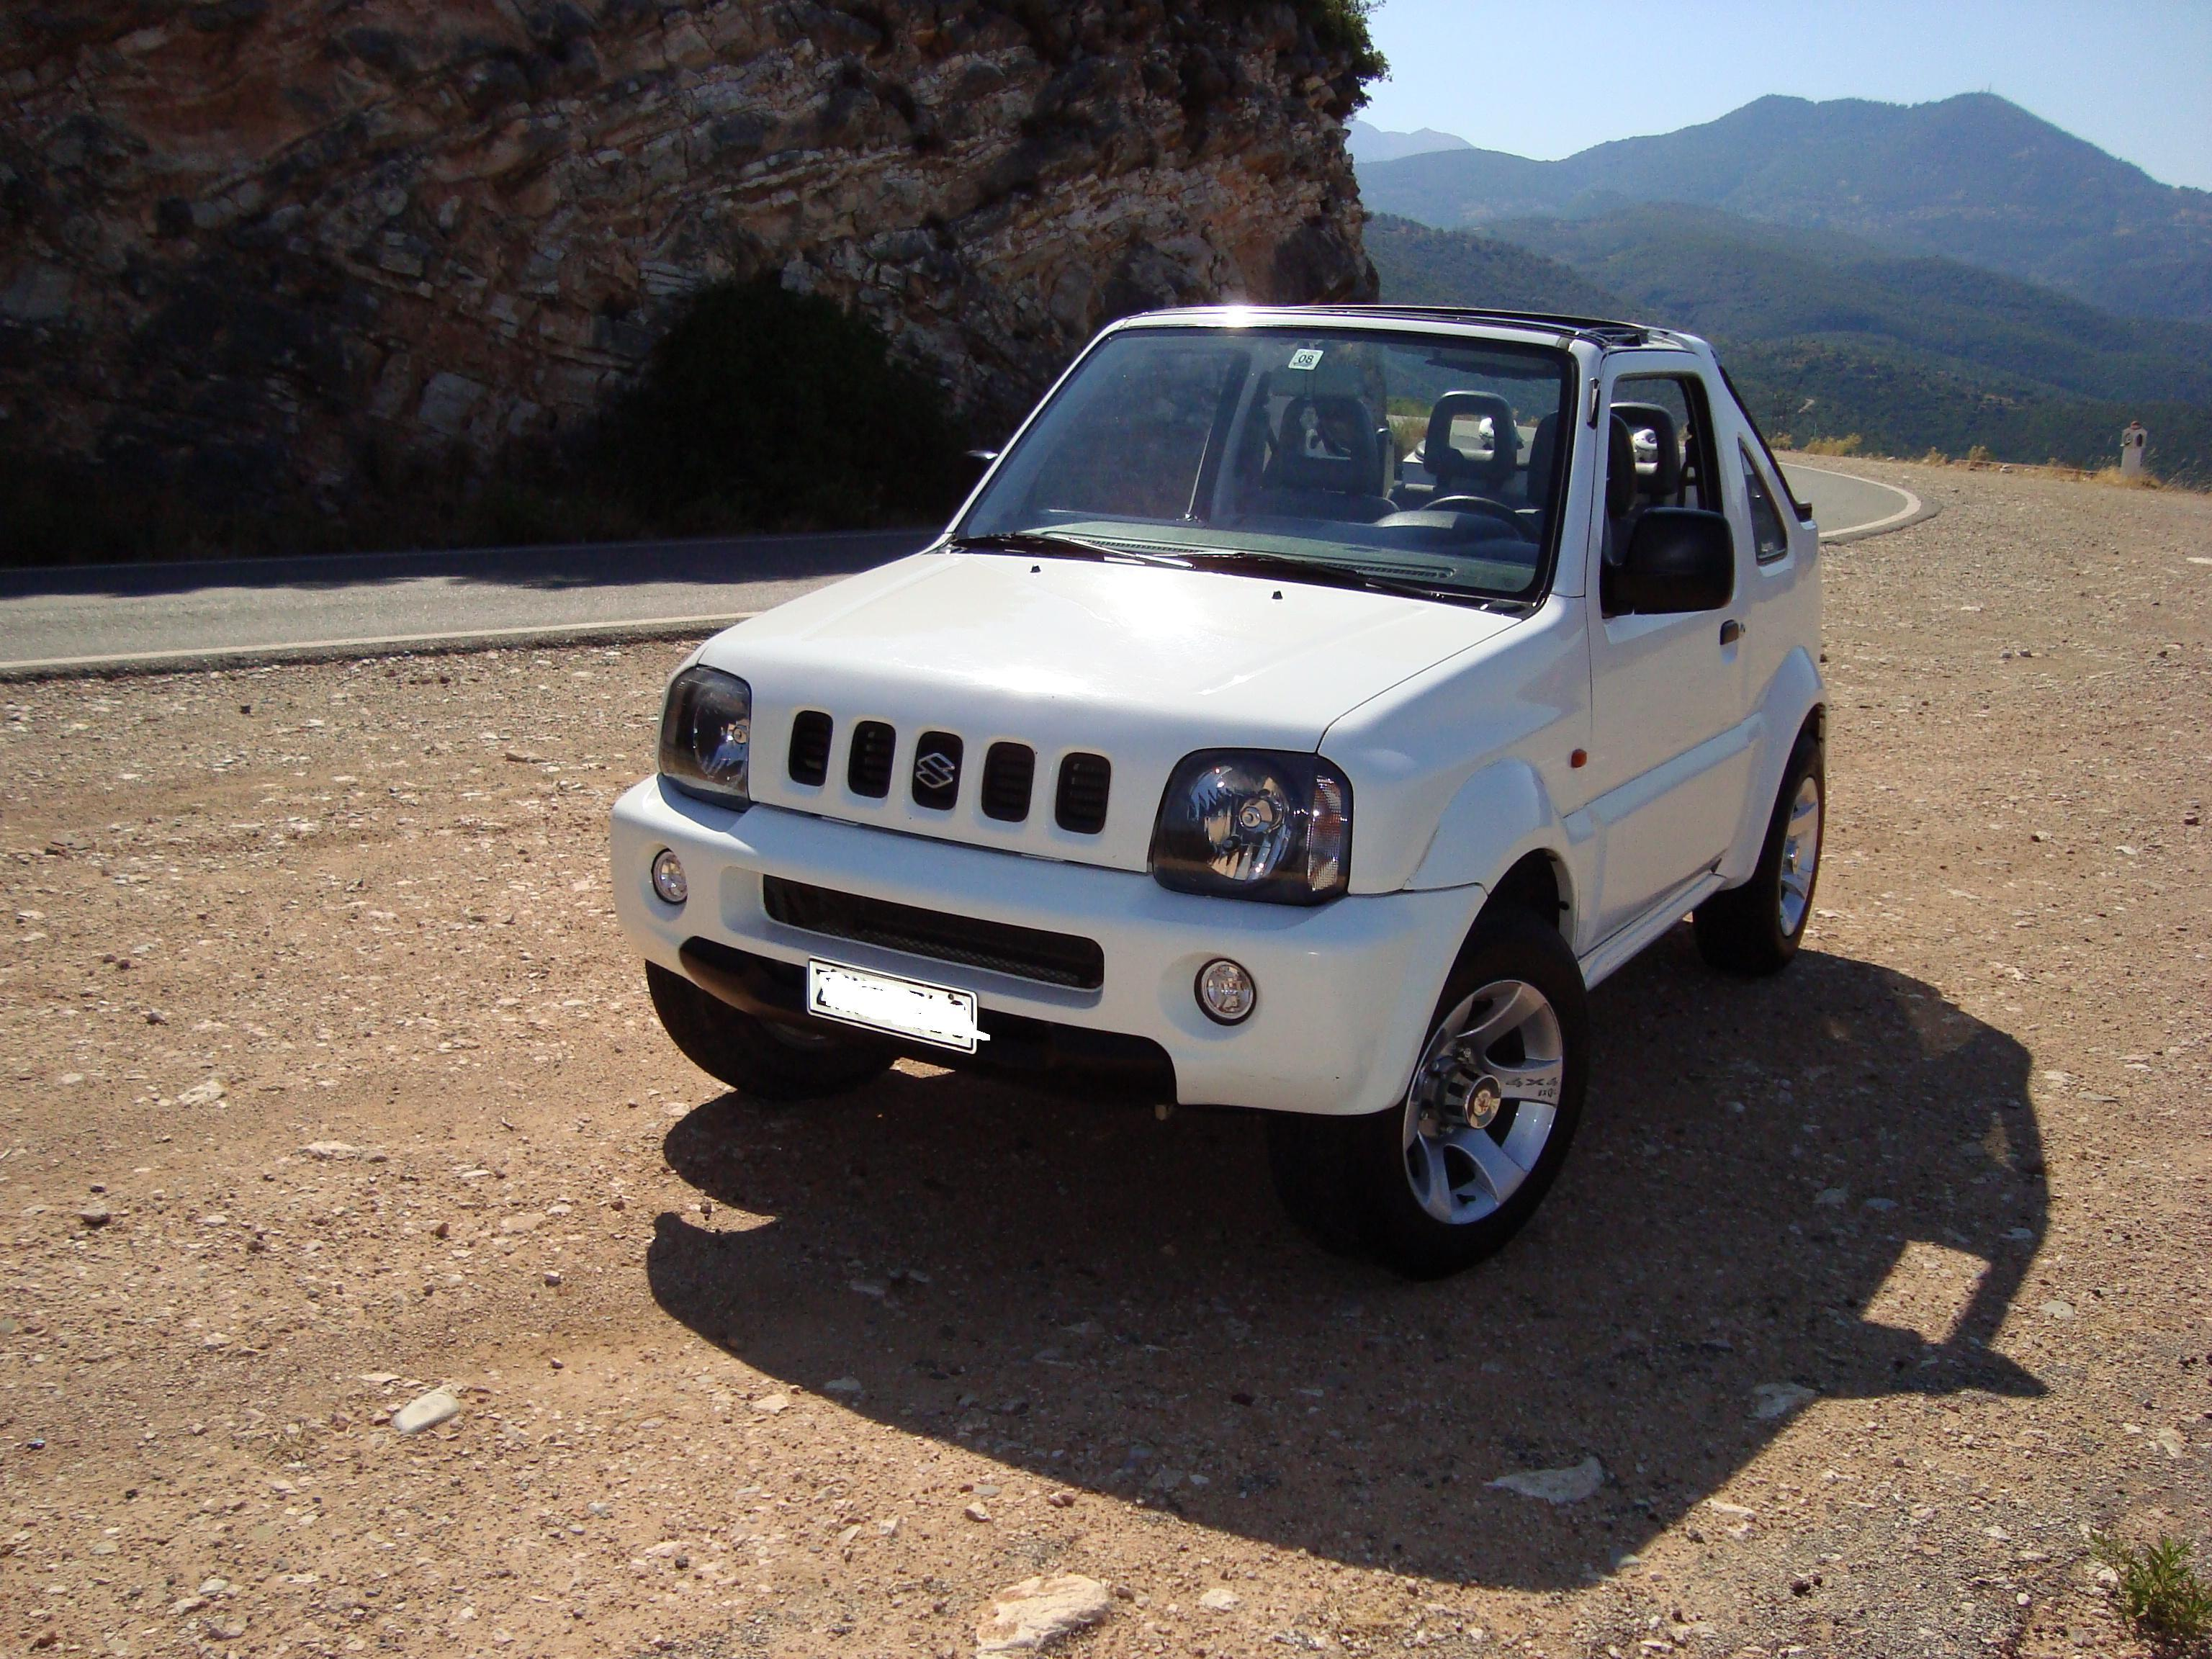 vellios 2004 Suzuki Grand Vitara Specs, Photos, Modification Info at